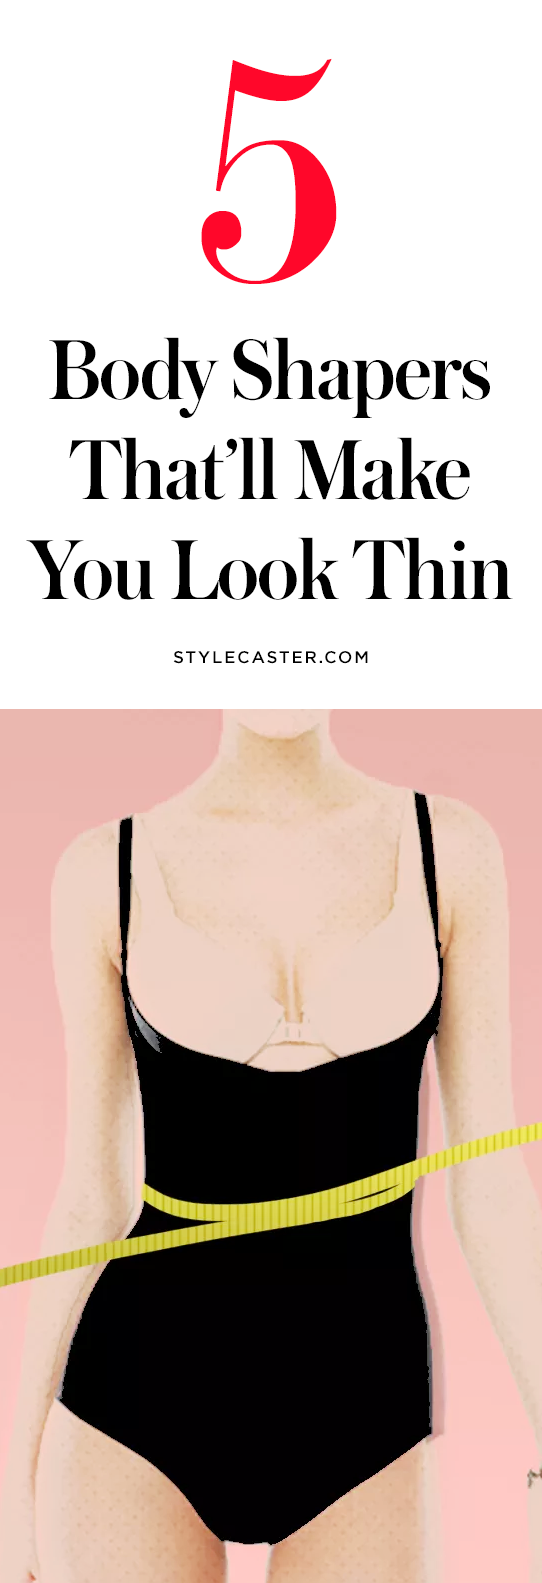 The best shapers that make you look thin | @stylecaster